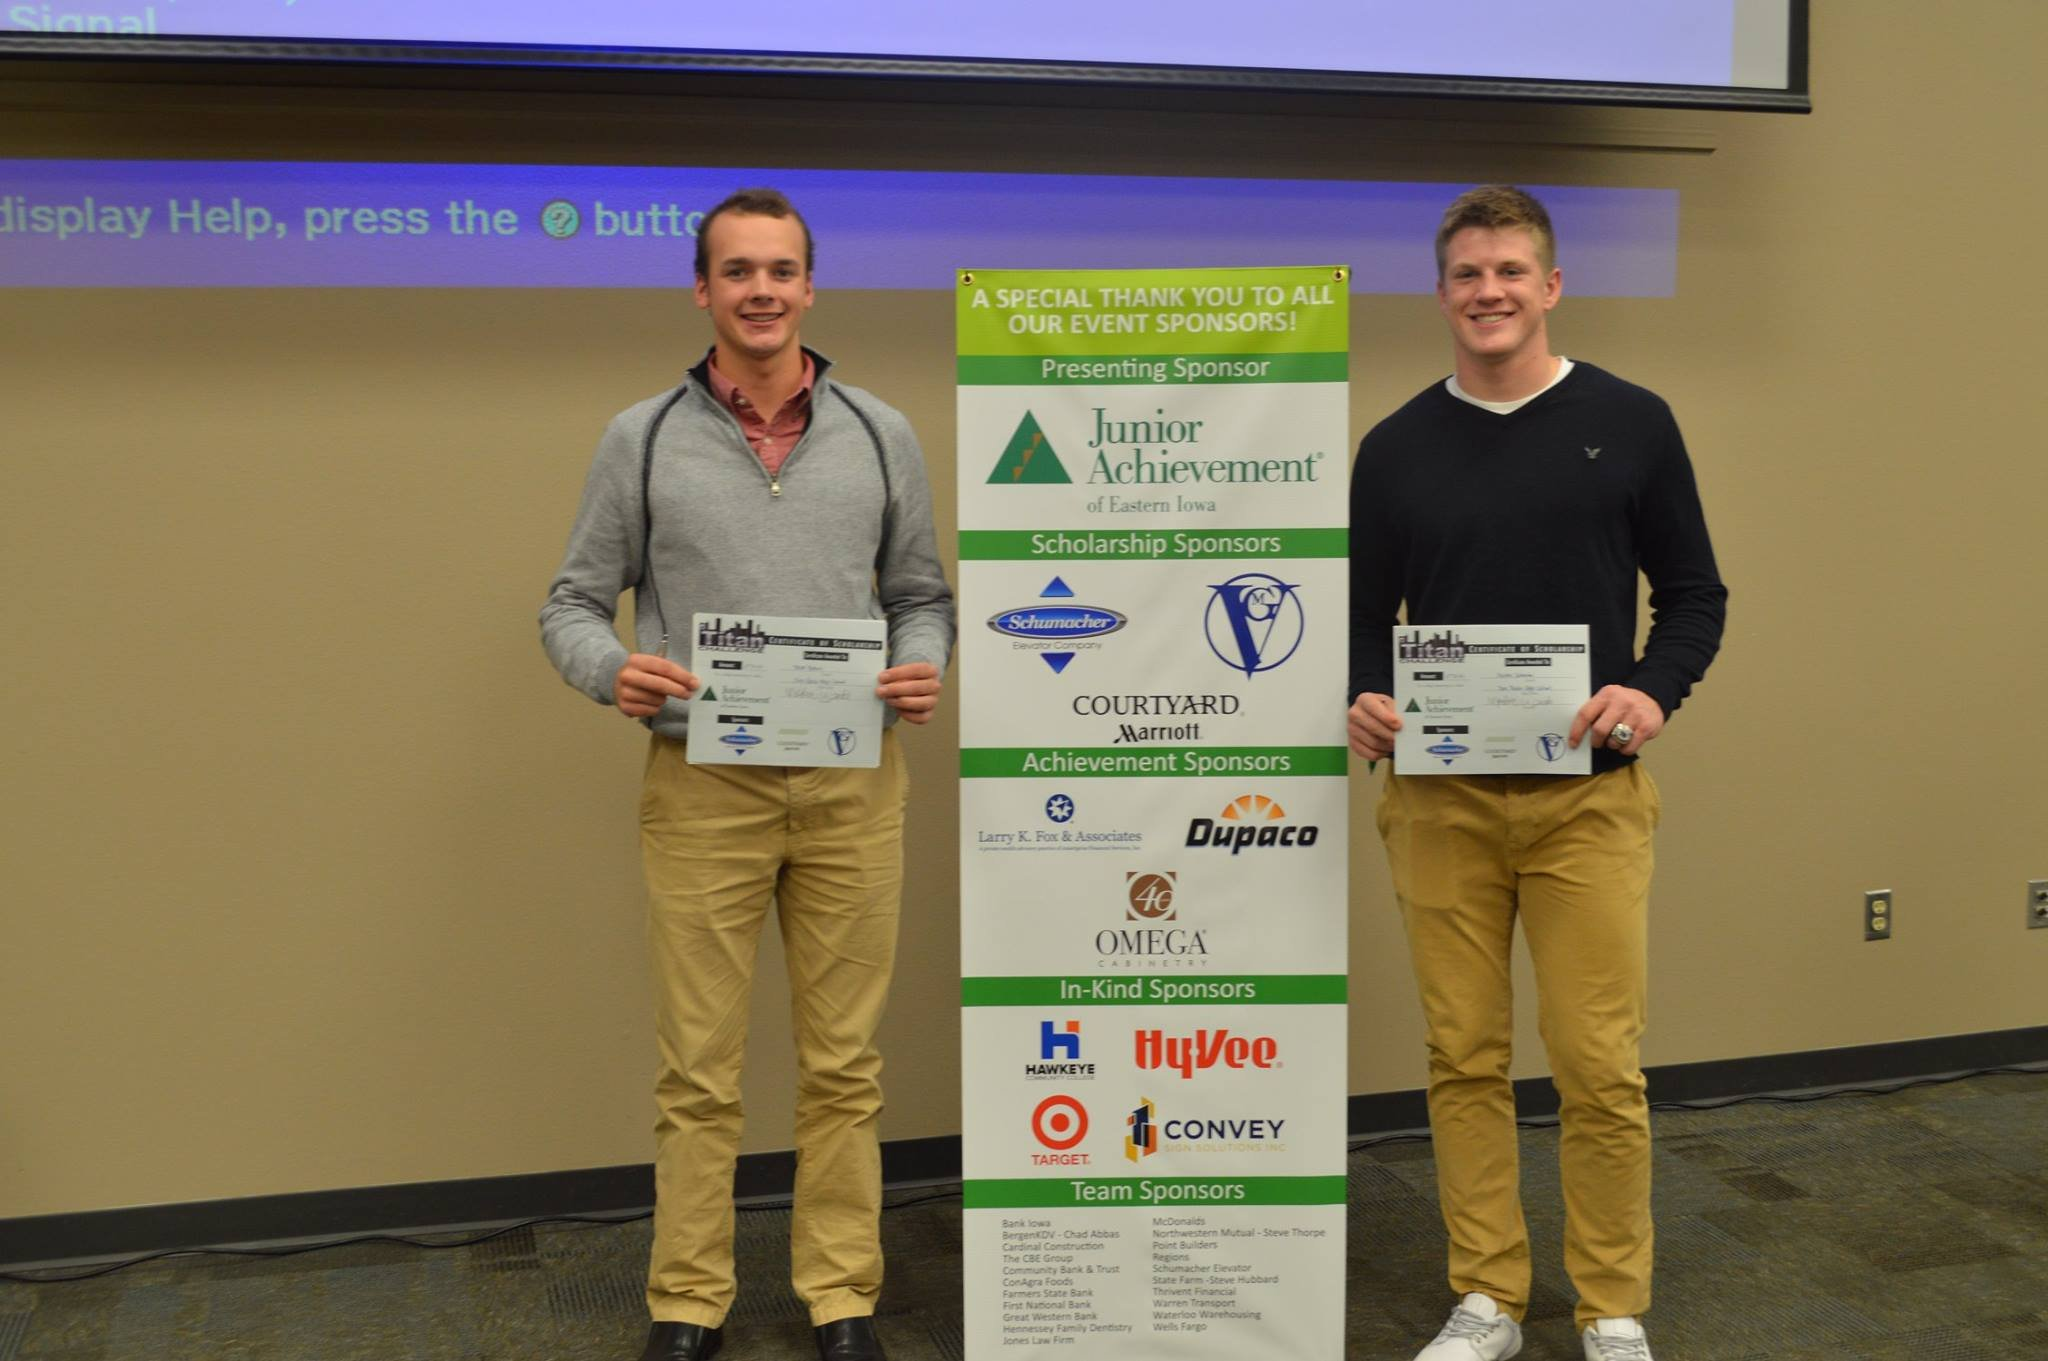 Pictured from left: 2nd place winners, Trevor Brown and  Austin Svoboda from Don Bosco High School